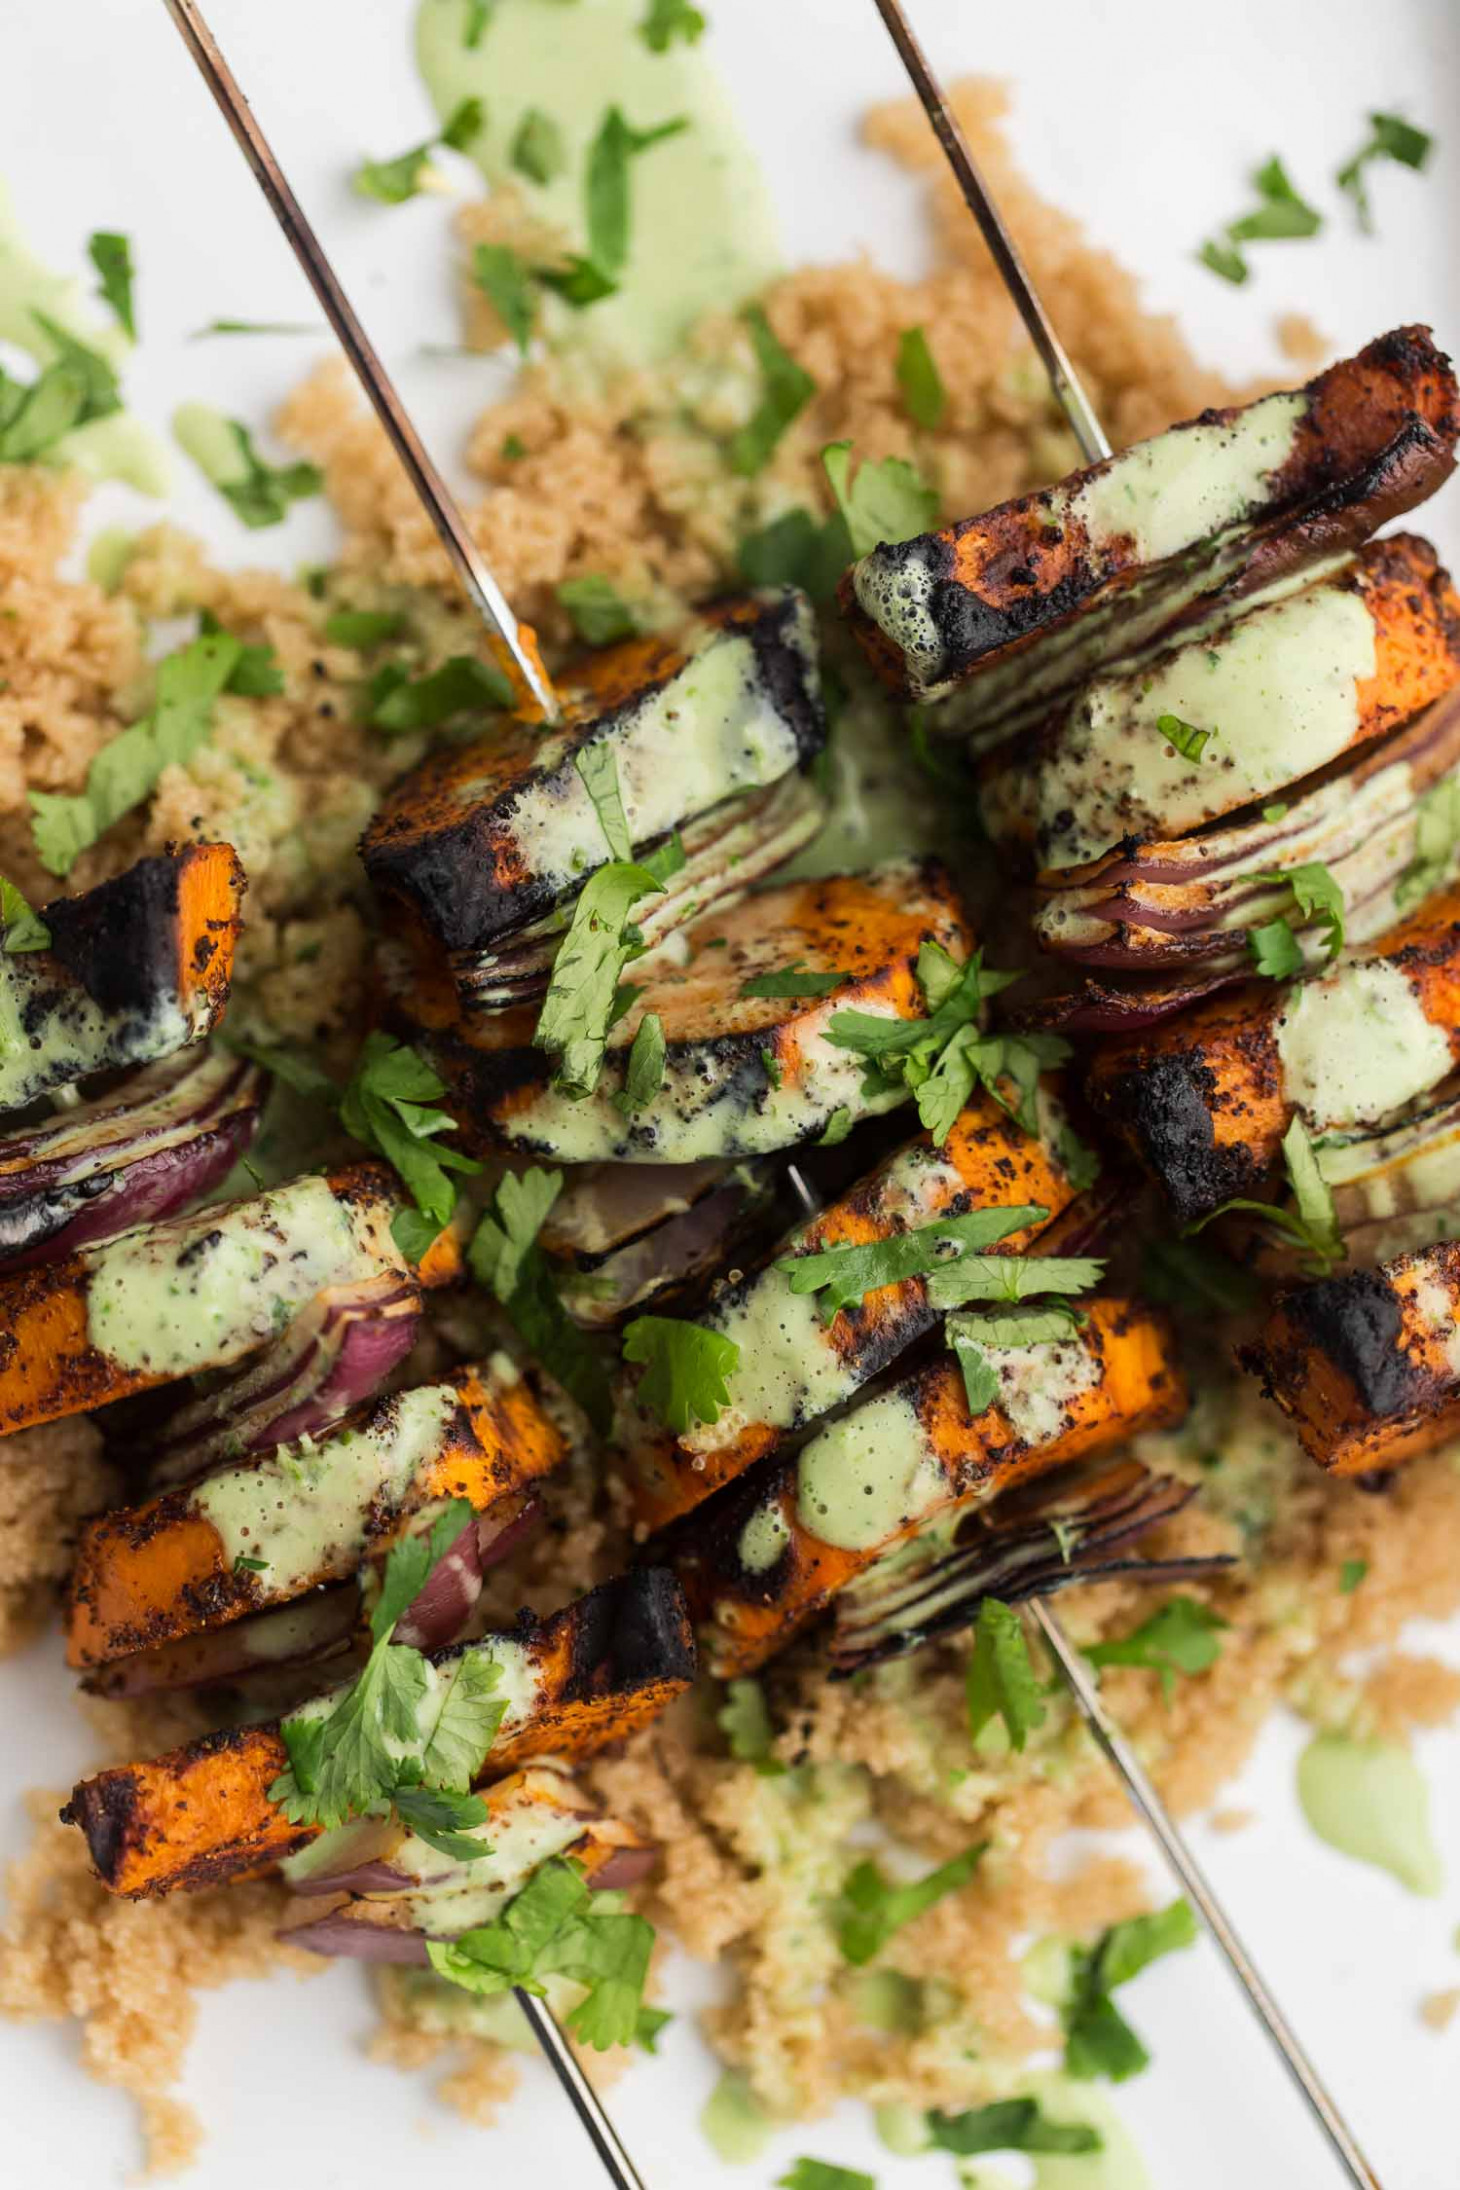 Spiced Sweet Potato Skewers with Cilantro Yogurt Sauce